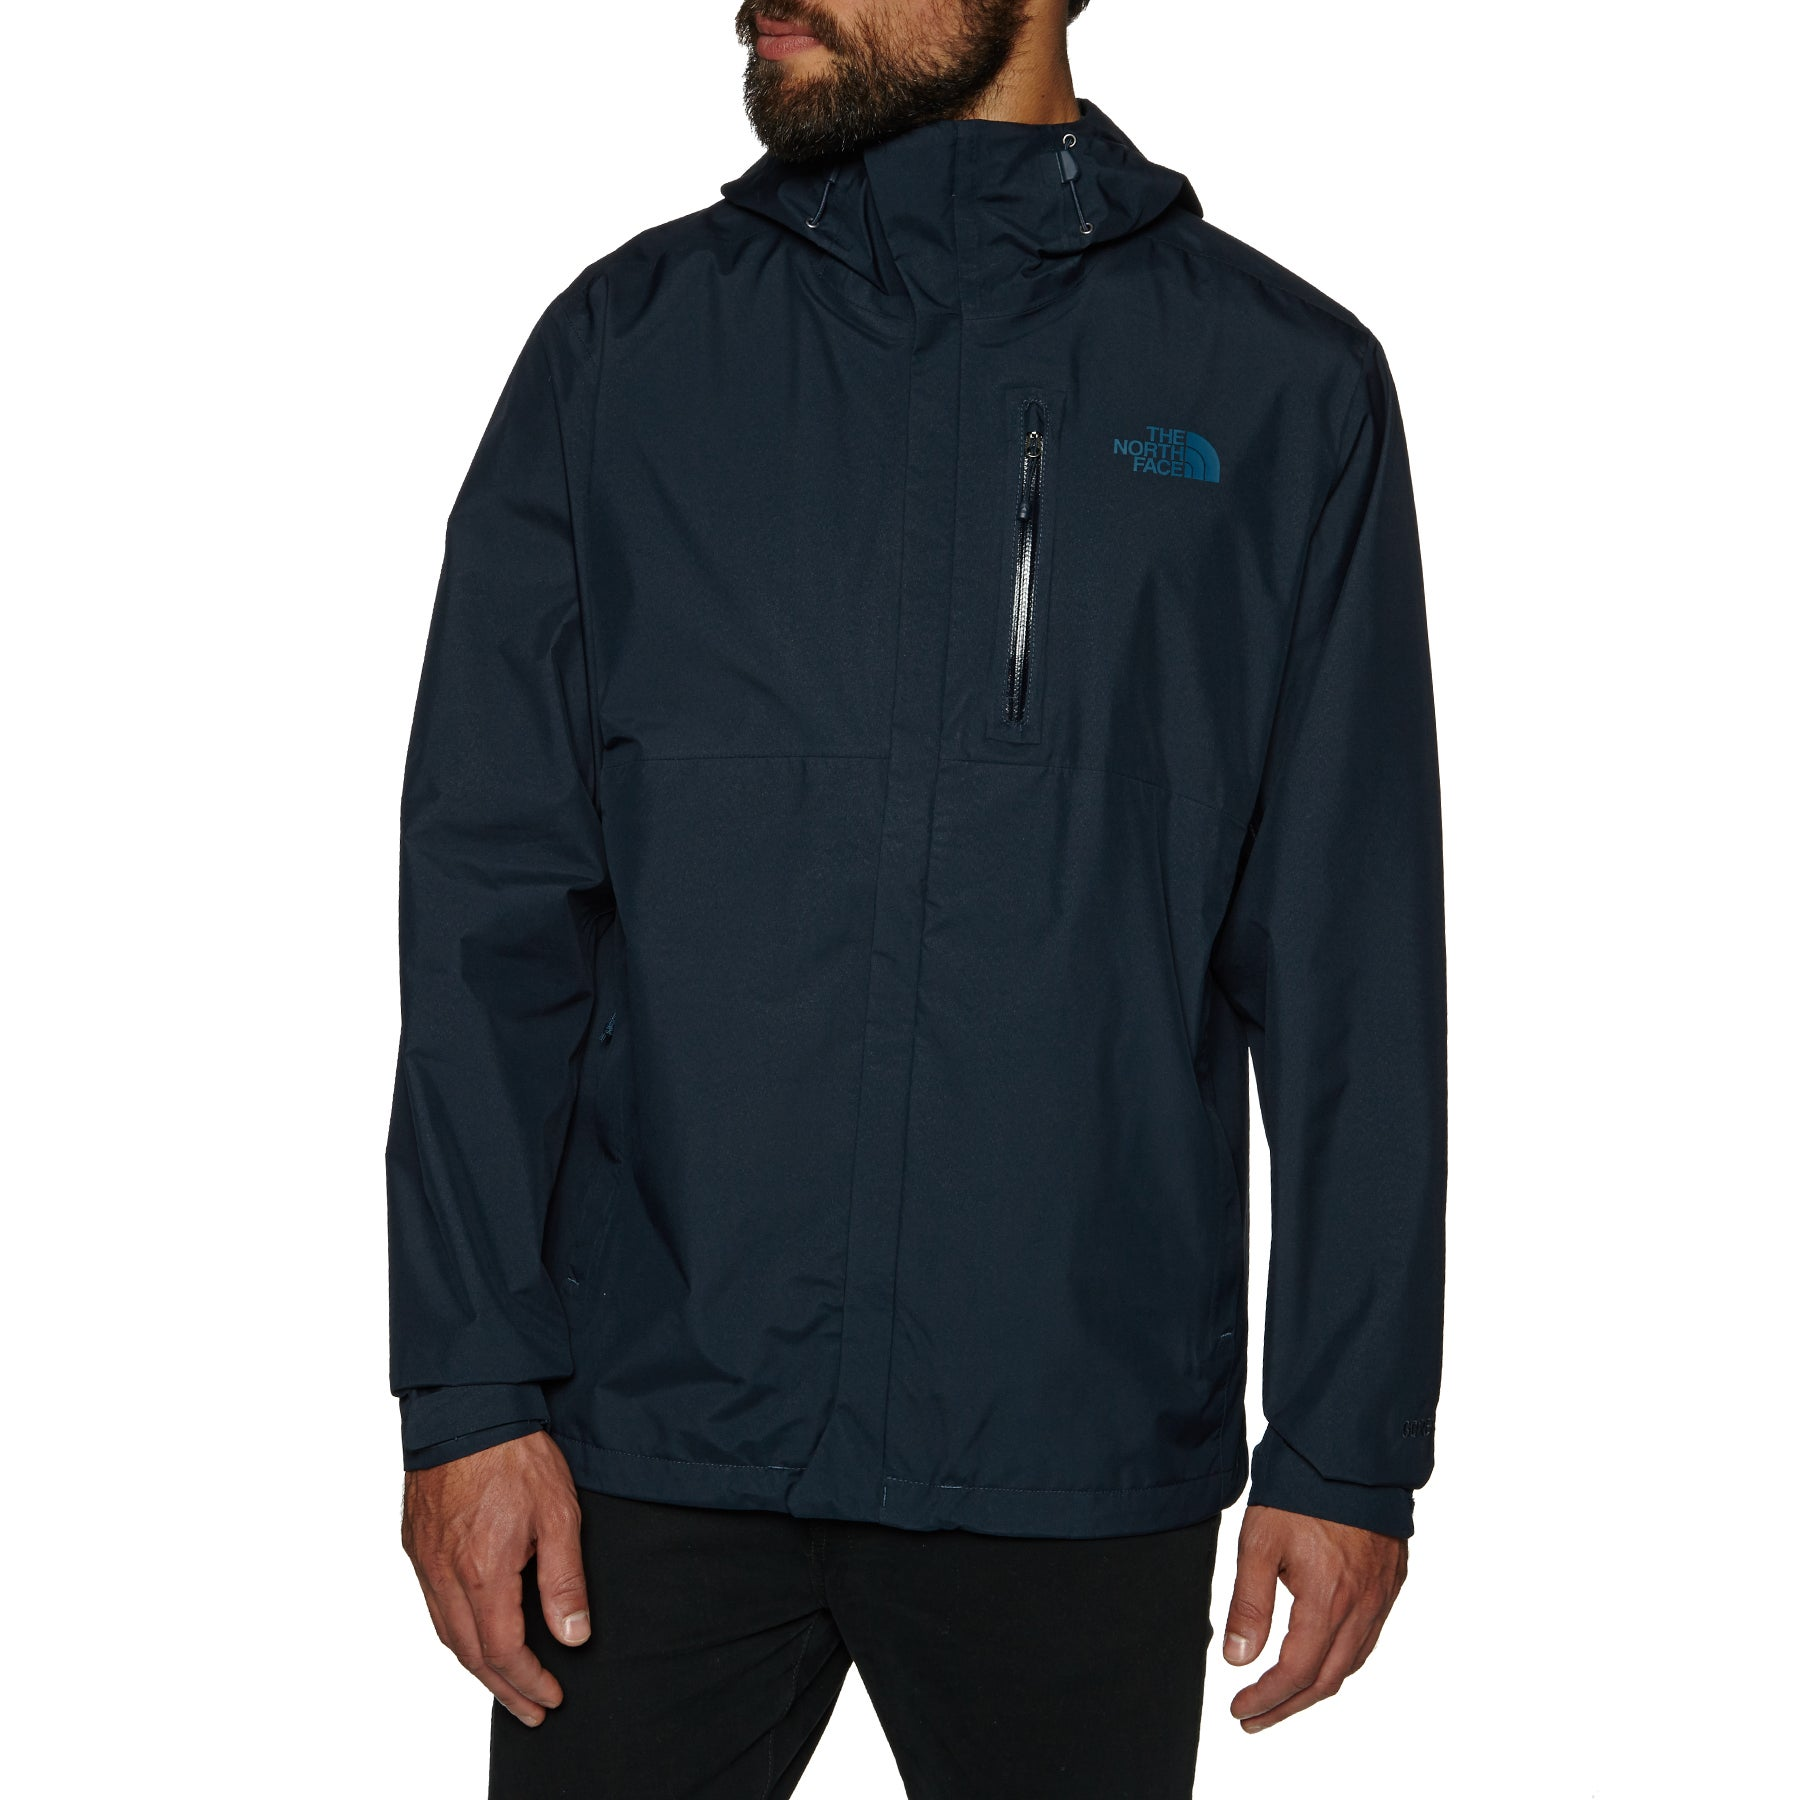 From Dryzzle North Face Surfdome Jacket Available IPIYx8